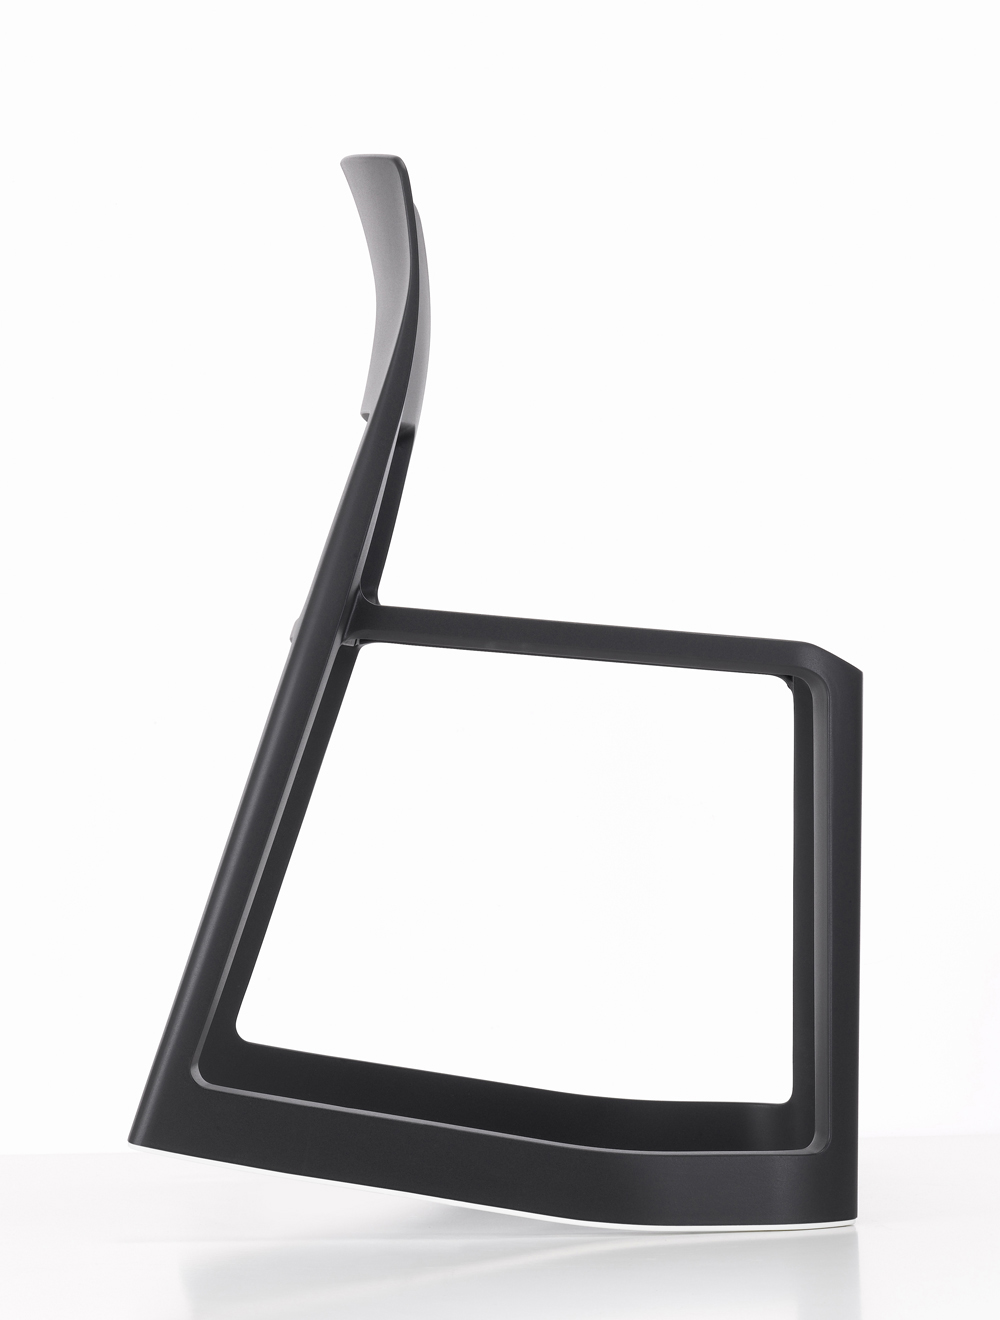 B&O_Tip Ton black forward_Vitra.jpg